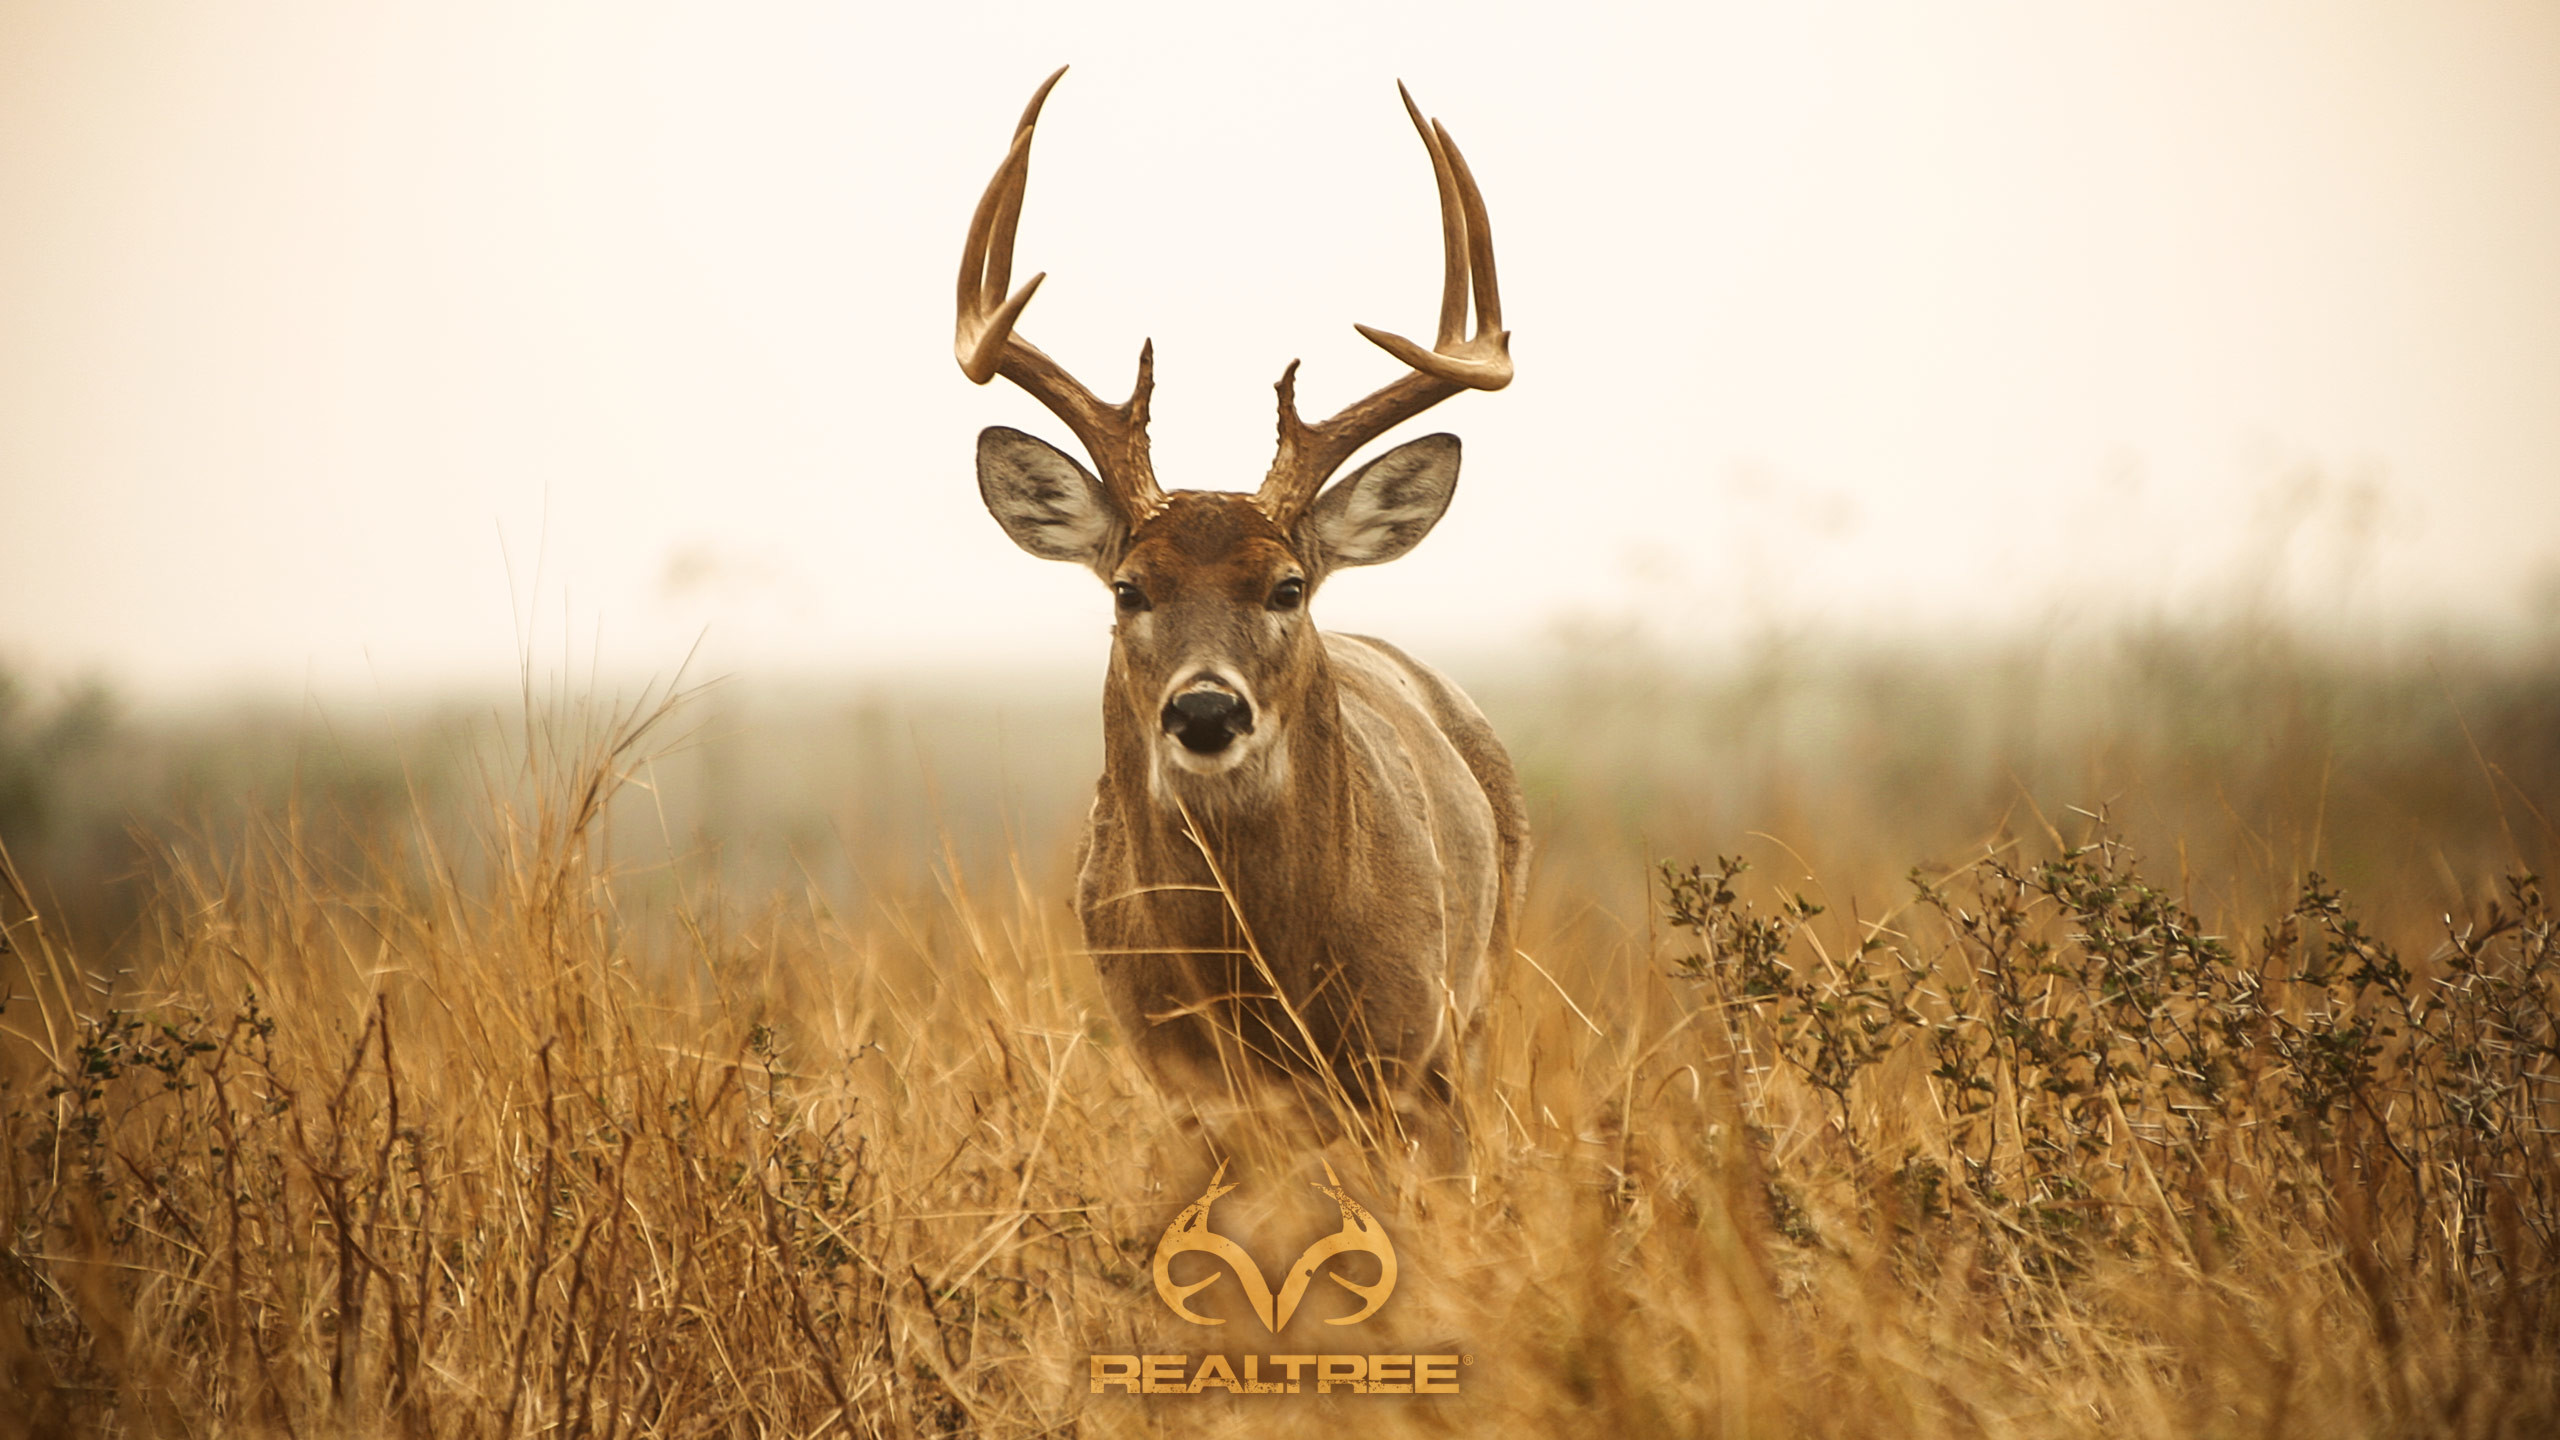 Iphone X Wallpaper With Border Deer Hunting Backgrounds 183 ①